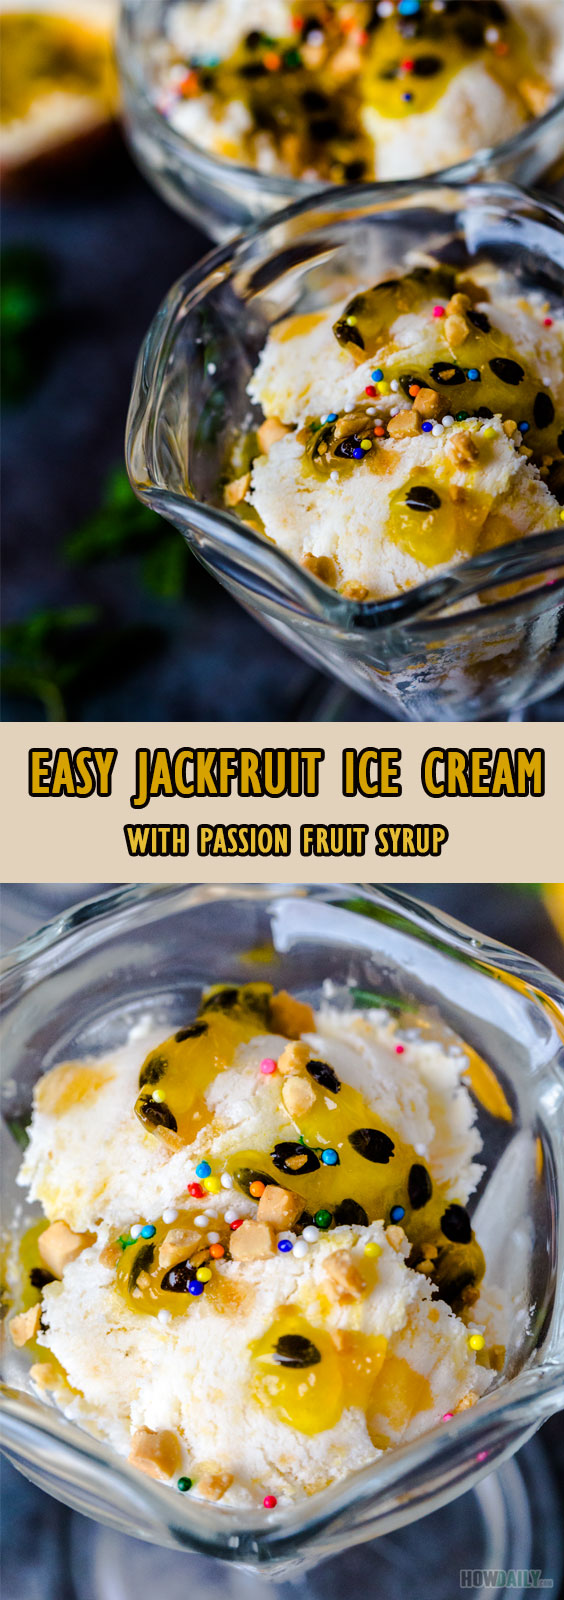 Easy no-churn Jackfruit Ice Cream with Passion Fruit Syrup